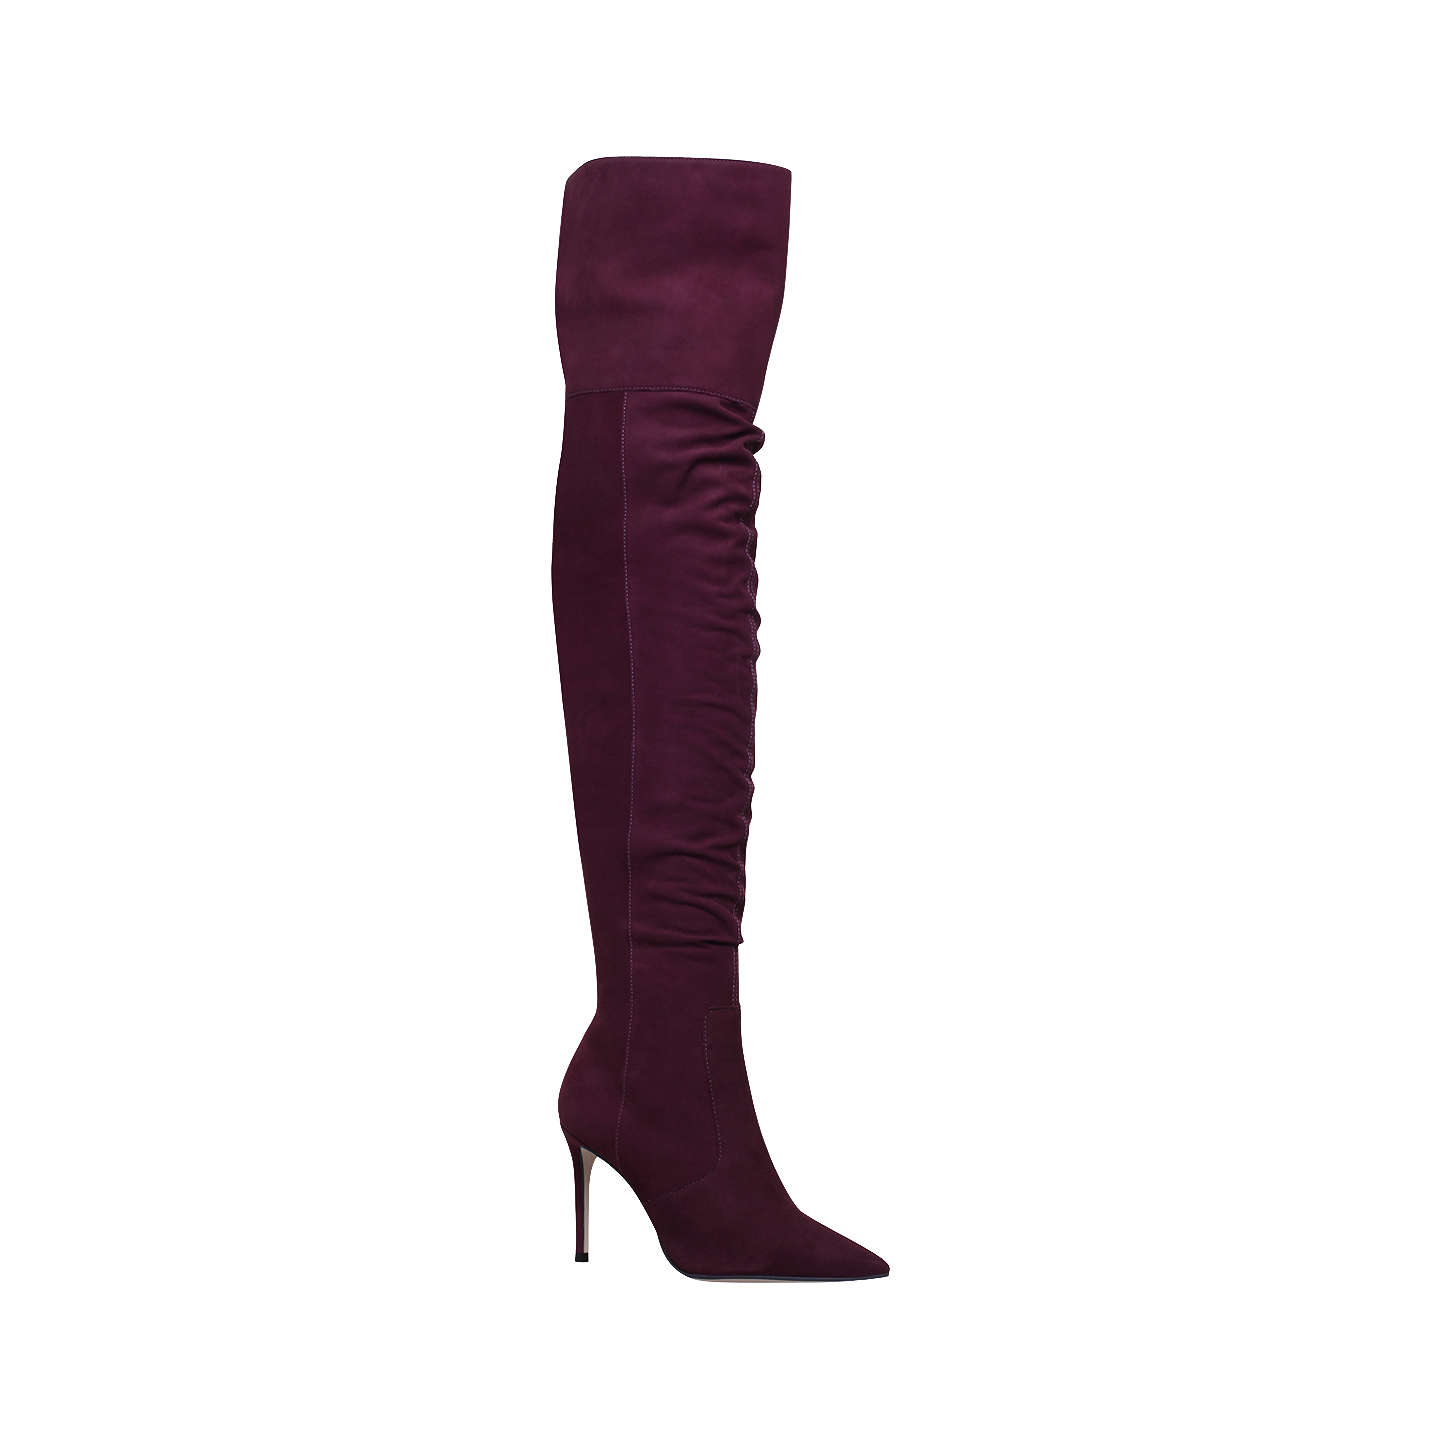 BuyCarvela Winner Over the Knee Boots, Red Wine, 3 Online at johnlewis.com  ...